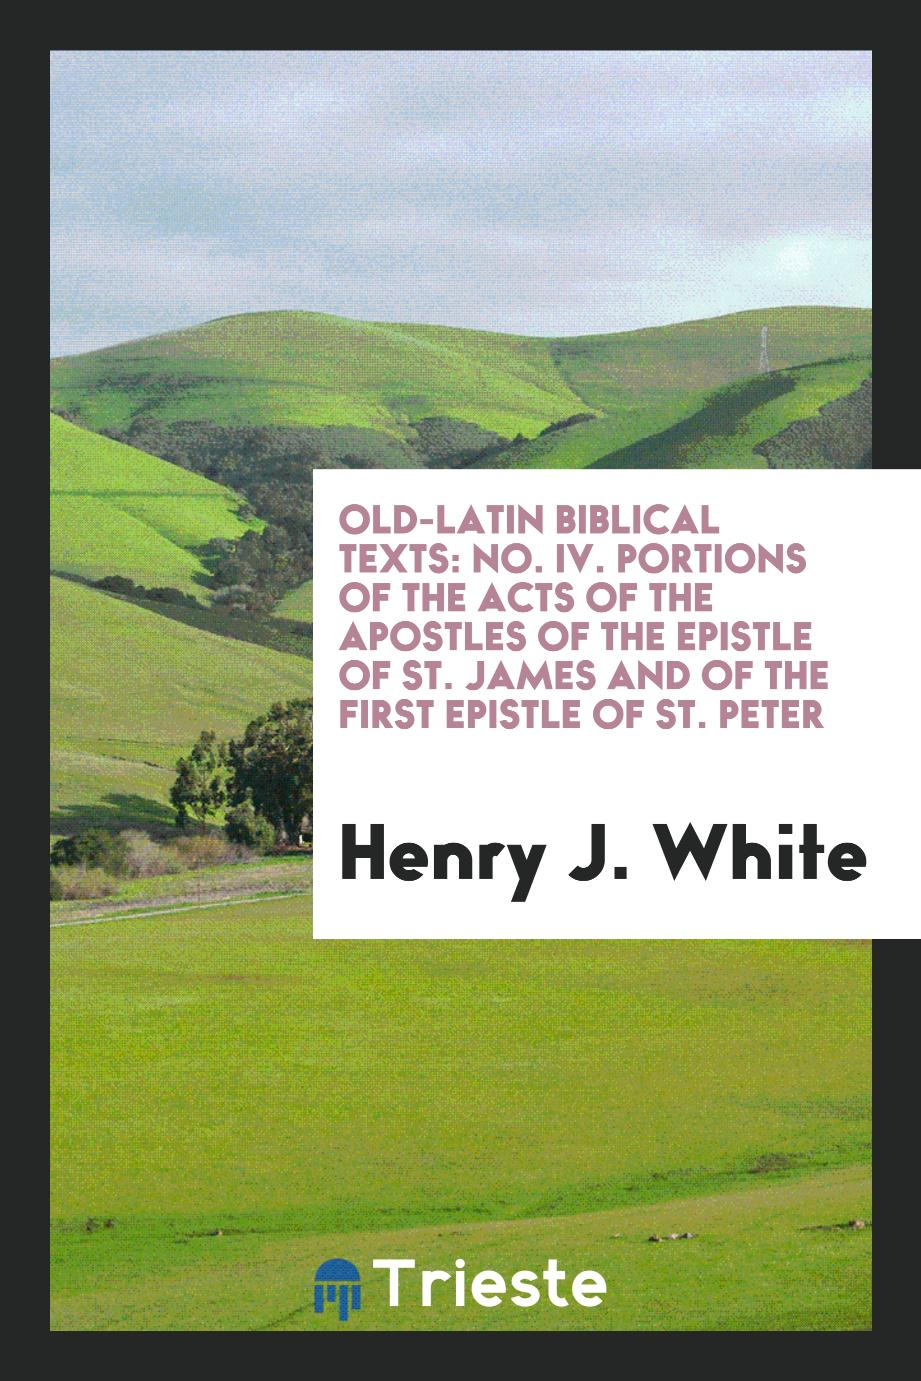 Old-Latin Biblical Texts: No. IV. Portions of the acts of the apostles of the epistle of St. James and of the first epistle of St. Peter